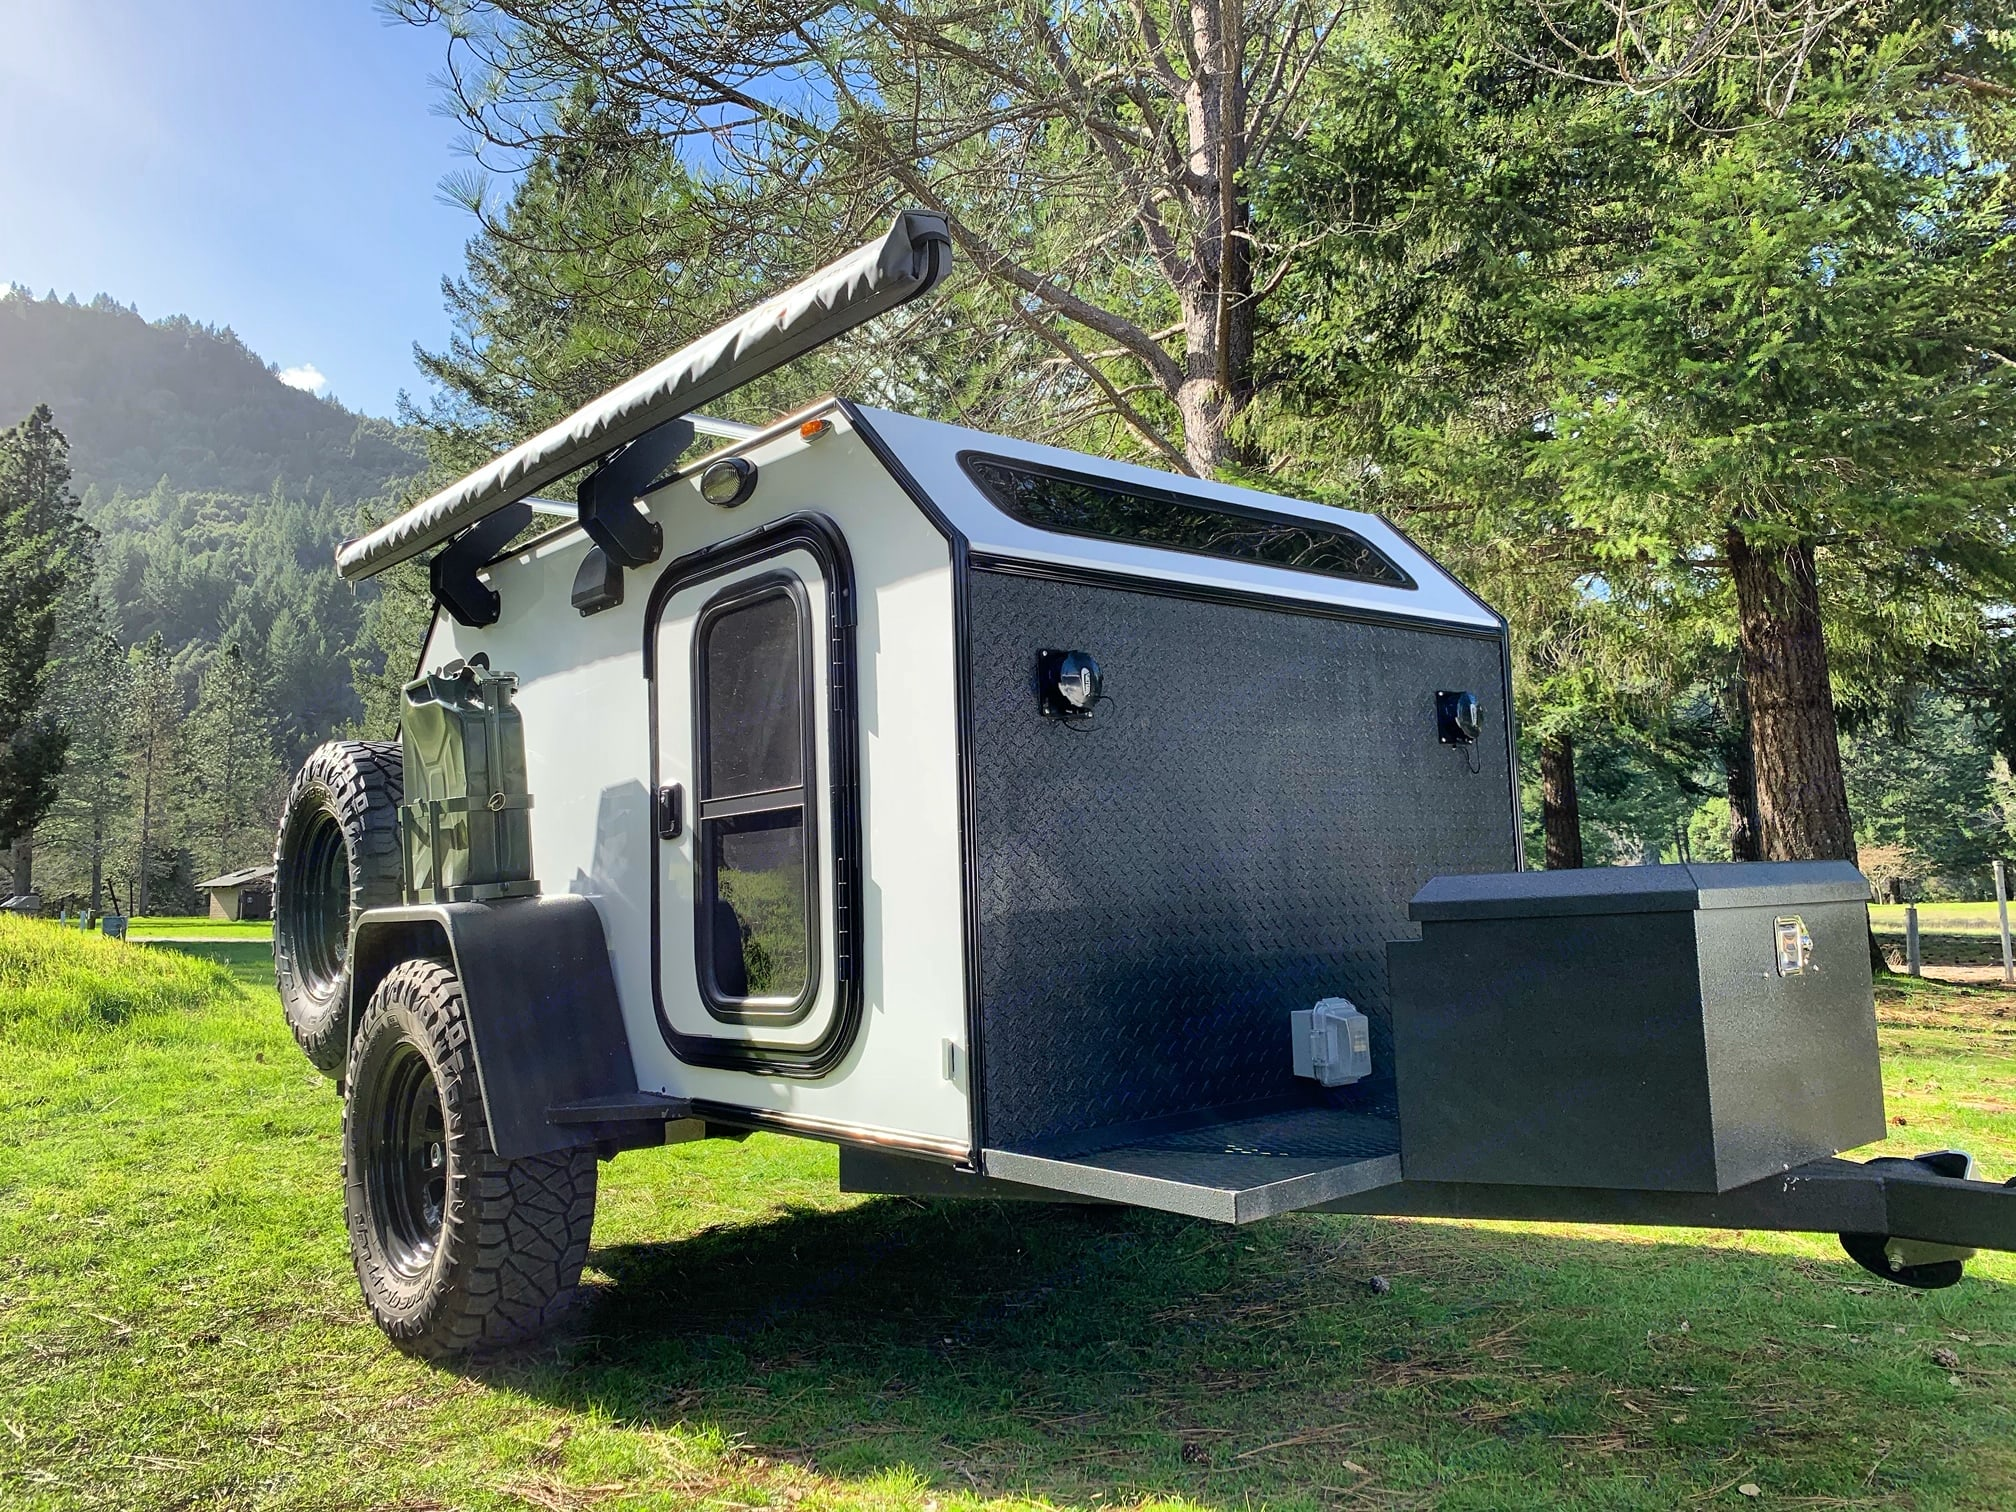 This is one of my favorite pictures of my do-it-all rig. Get out and explore. Camp where ever the trails take you.. Vintage Trailer Works XTR 2020